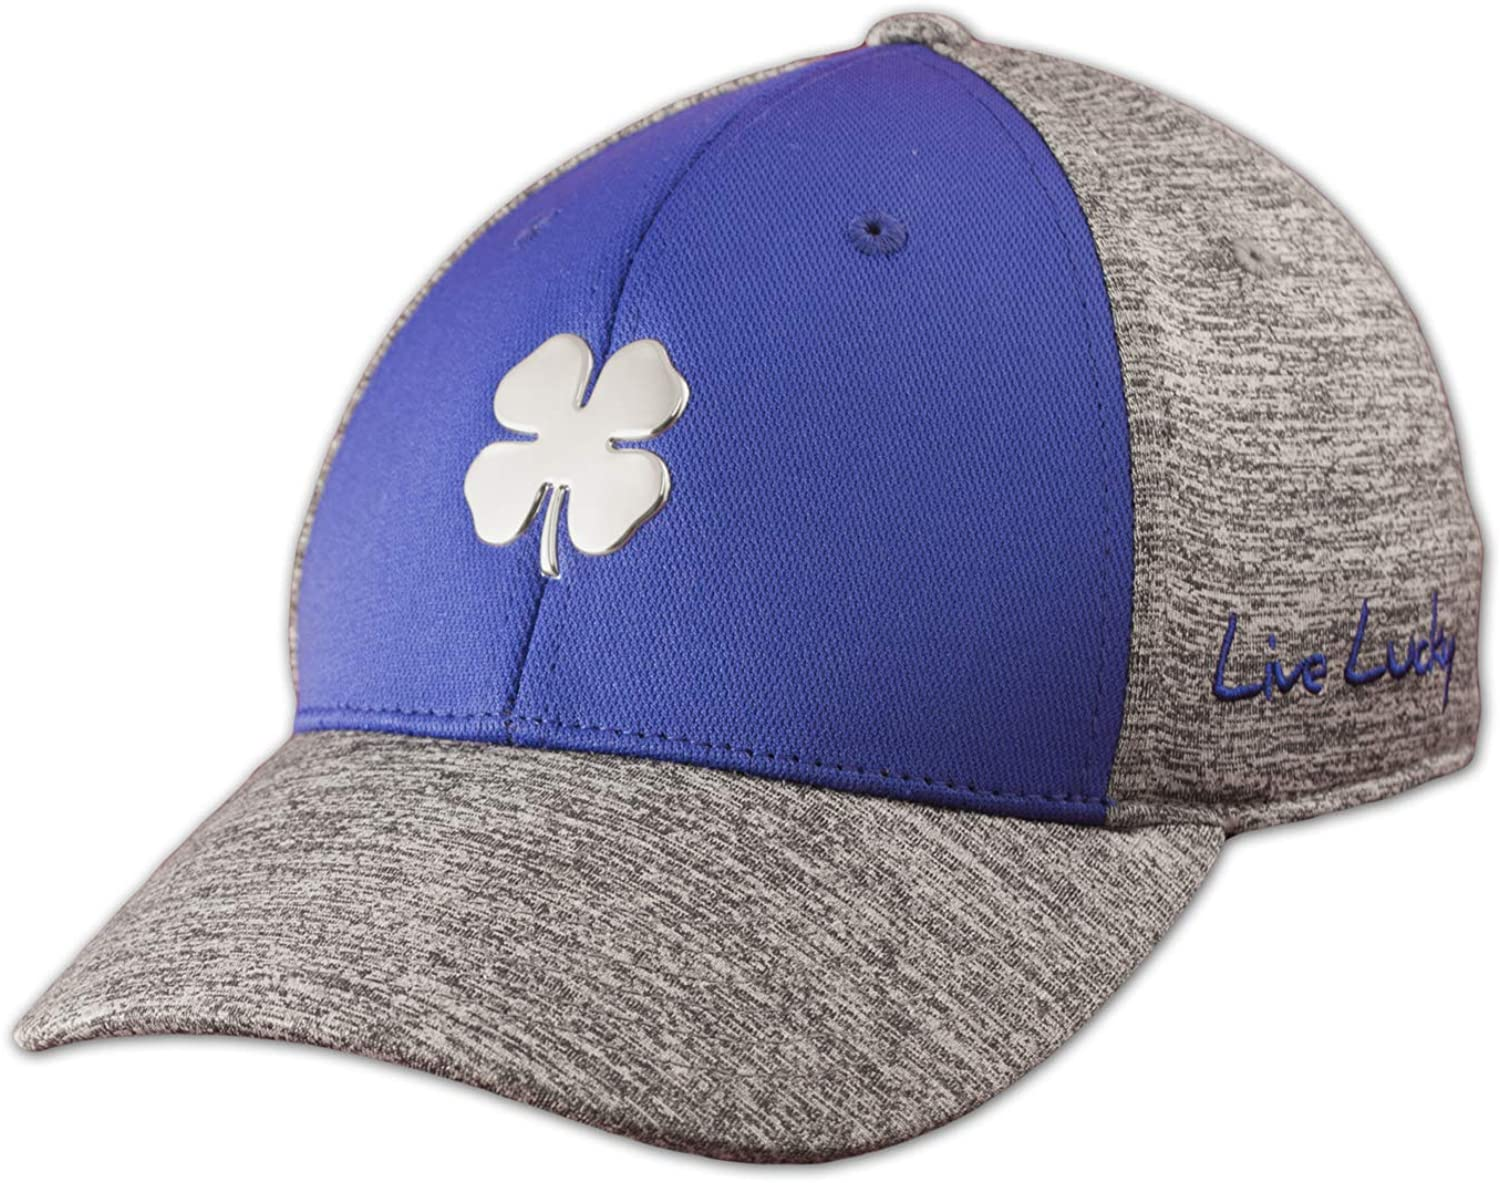 Black Clover New Live Lucky Heather Luck #3 Royal/Heather Fitted S/M Golf Hat